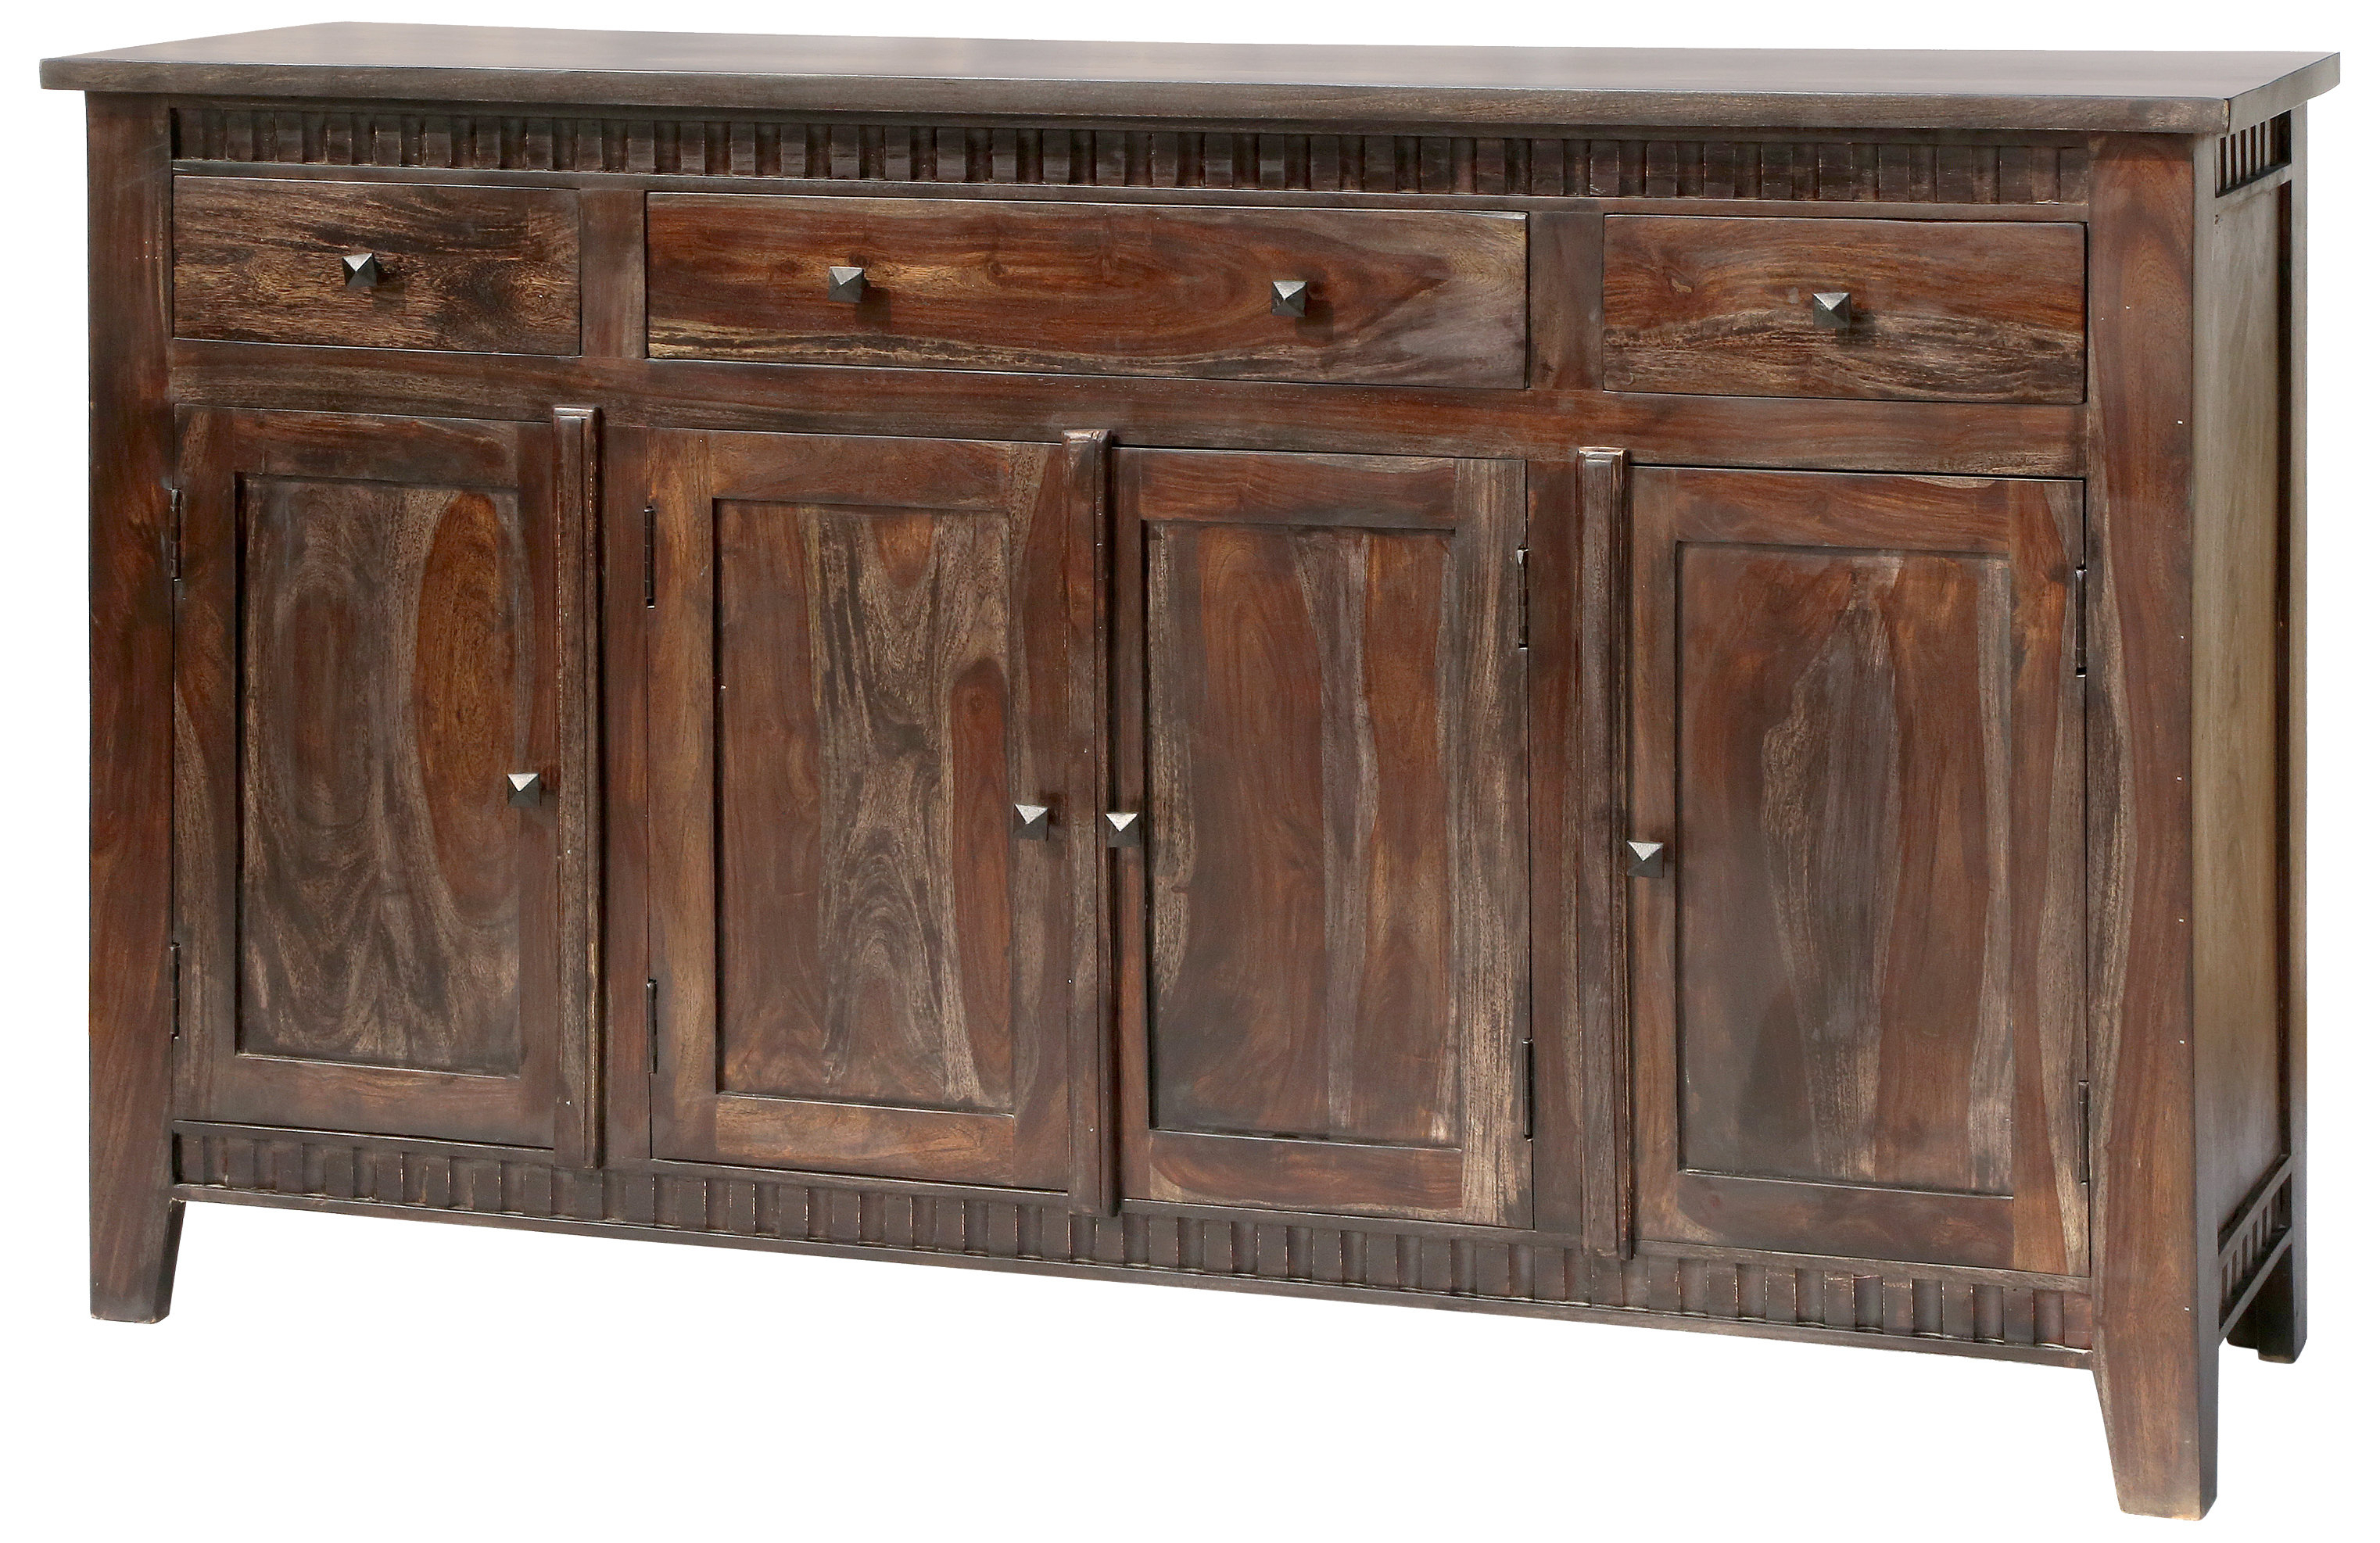 3 Drawer Sideboard | Wayfair With Regard To Most Recent Drummond 3 Drawer Sideboards (#5 of 20)